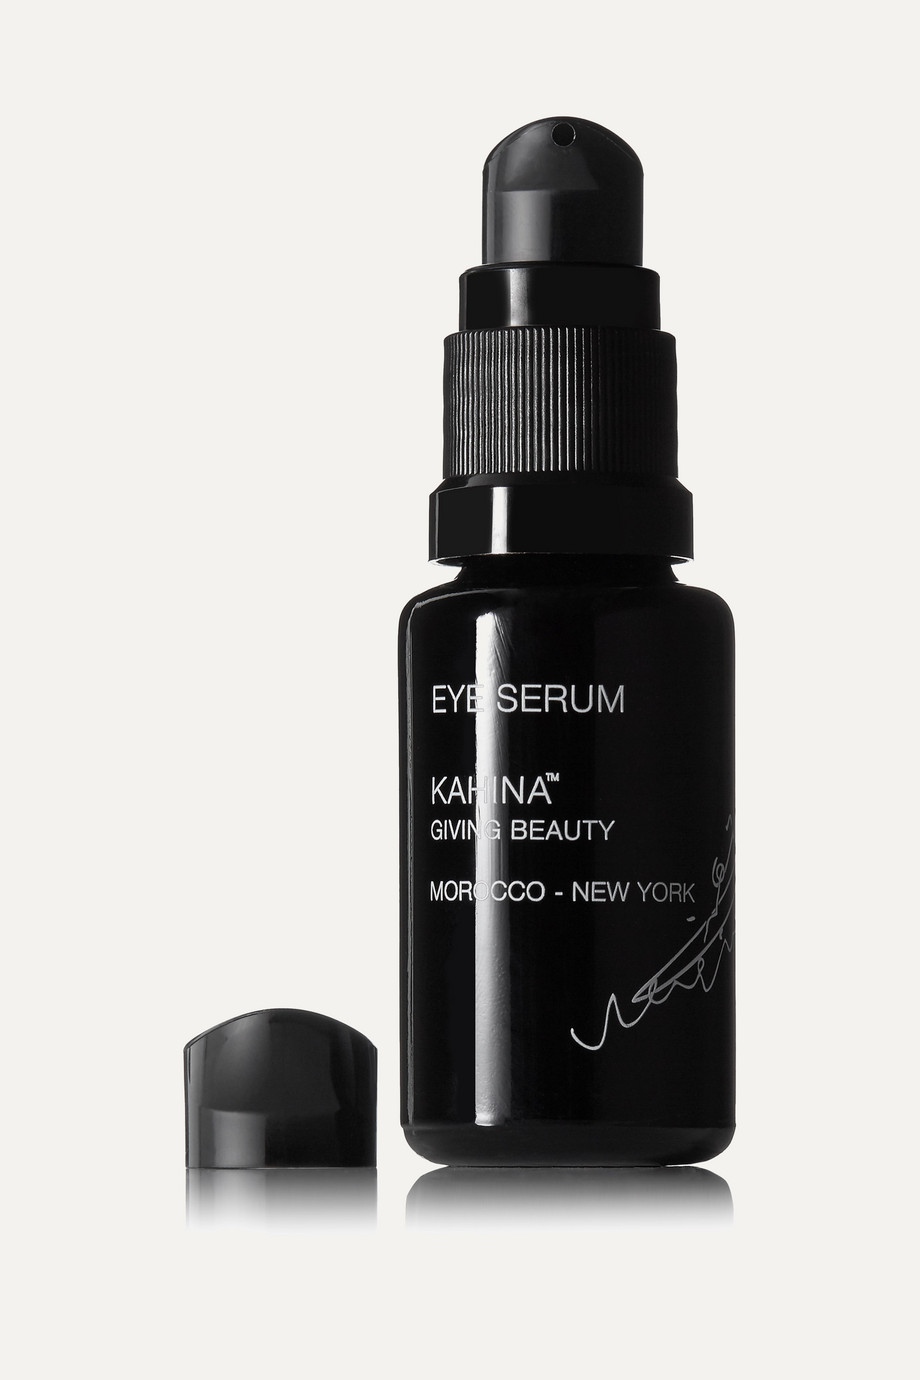 Kahina Giving Beauty + NET SUSTAIN Eye Serum, 15ml